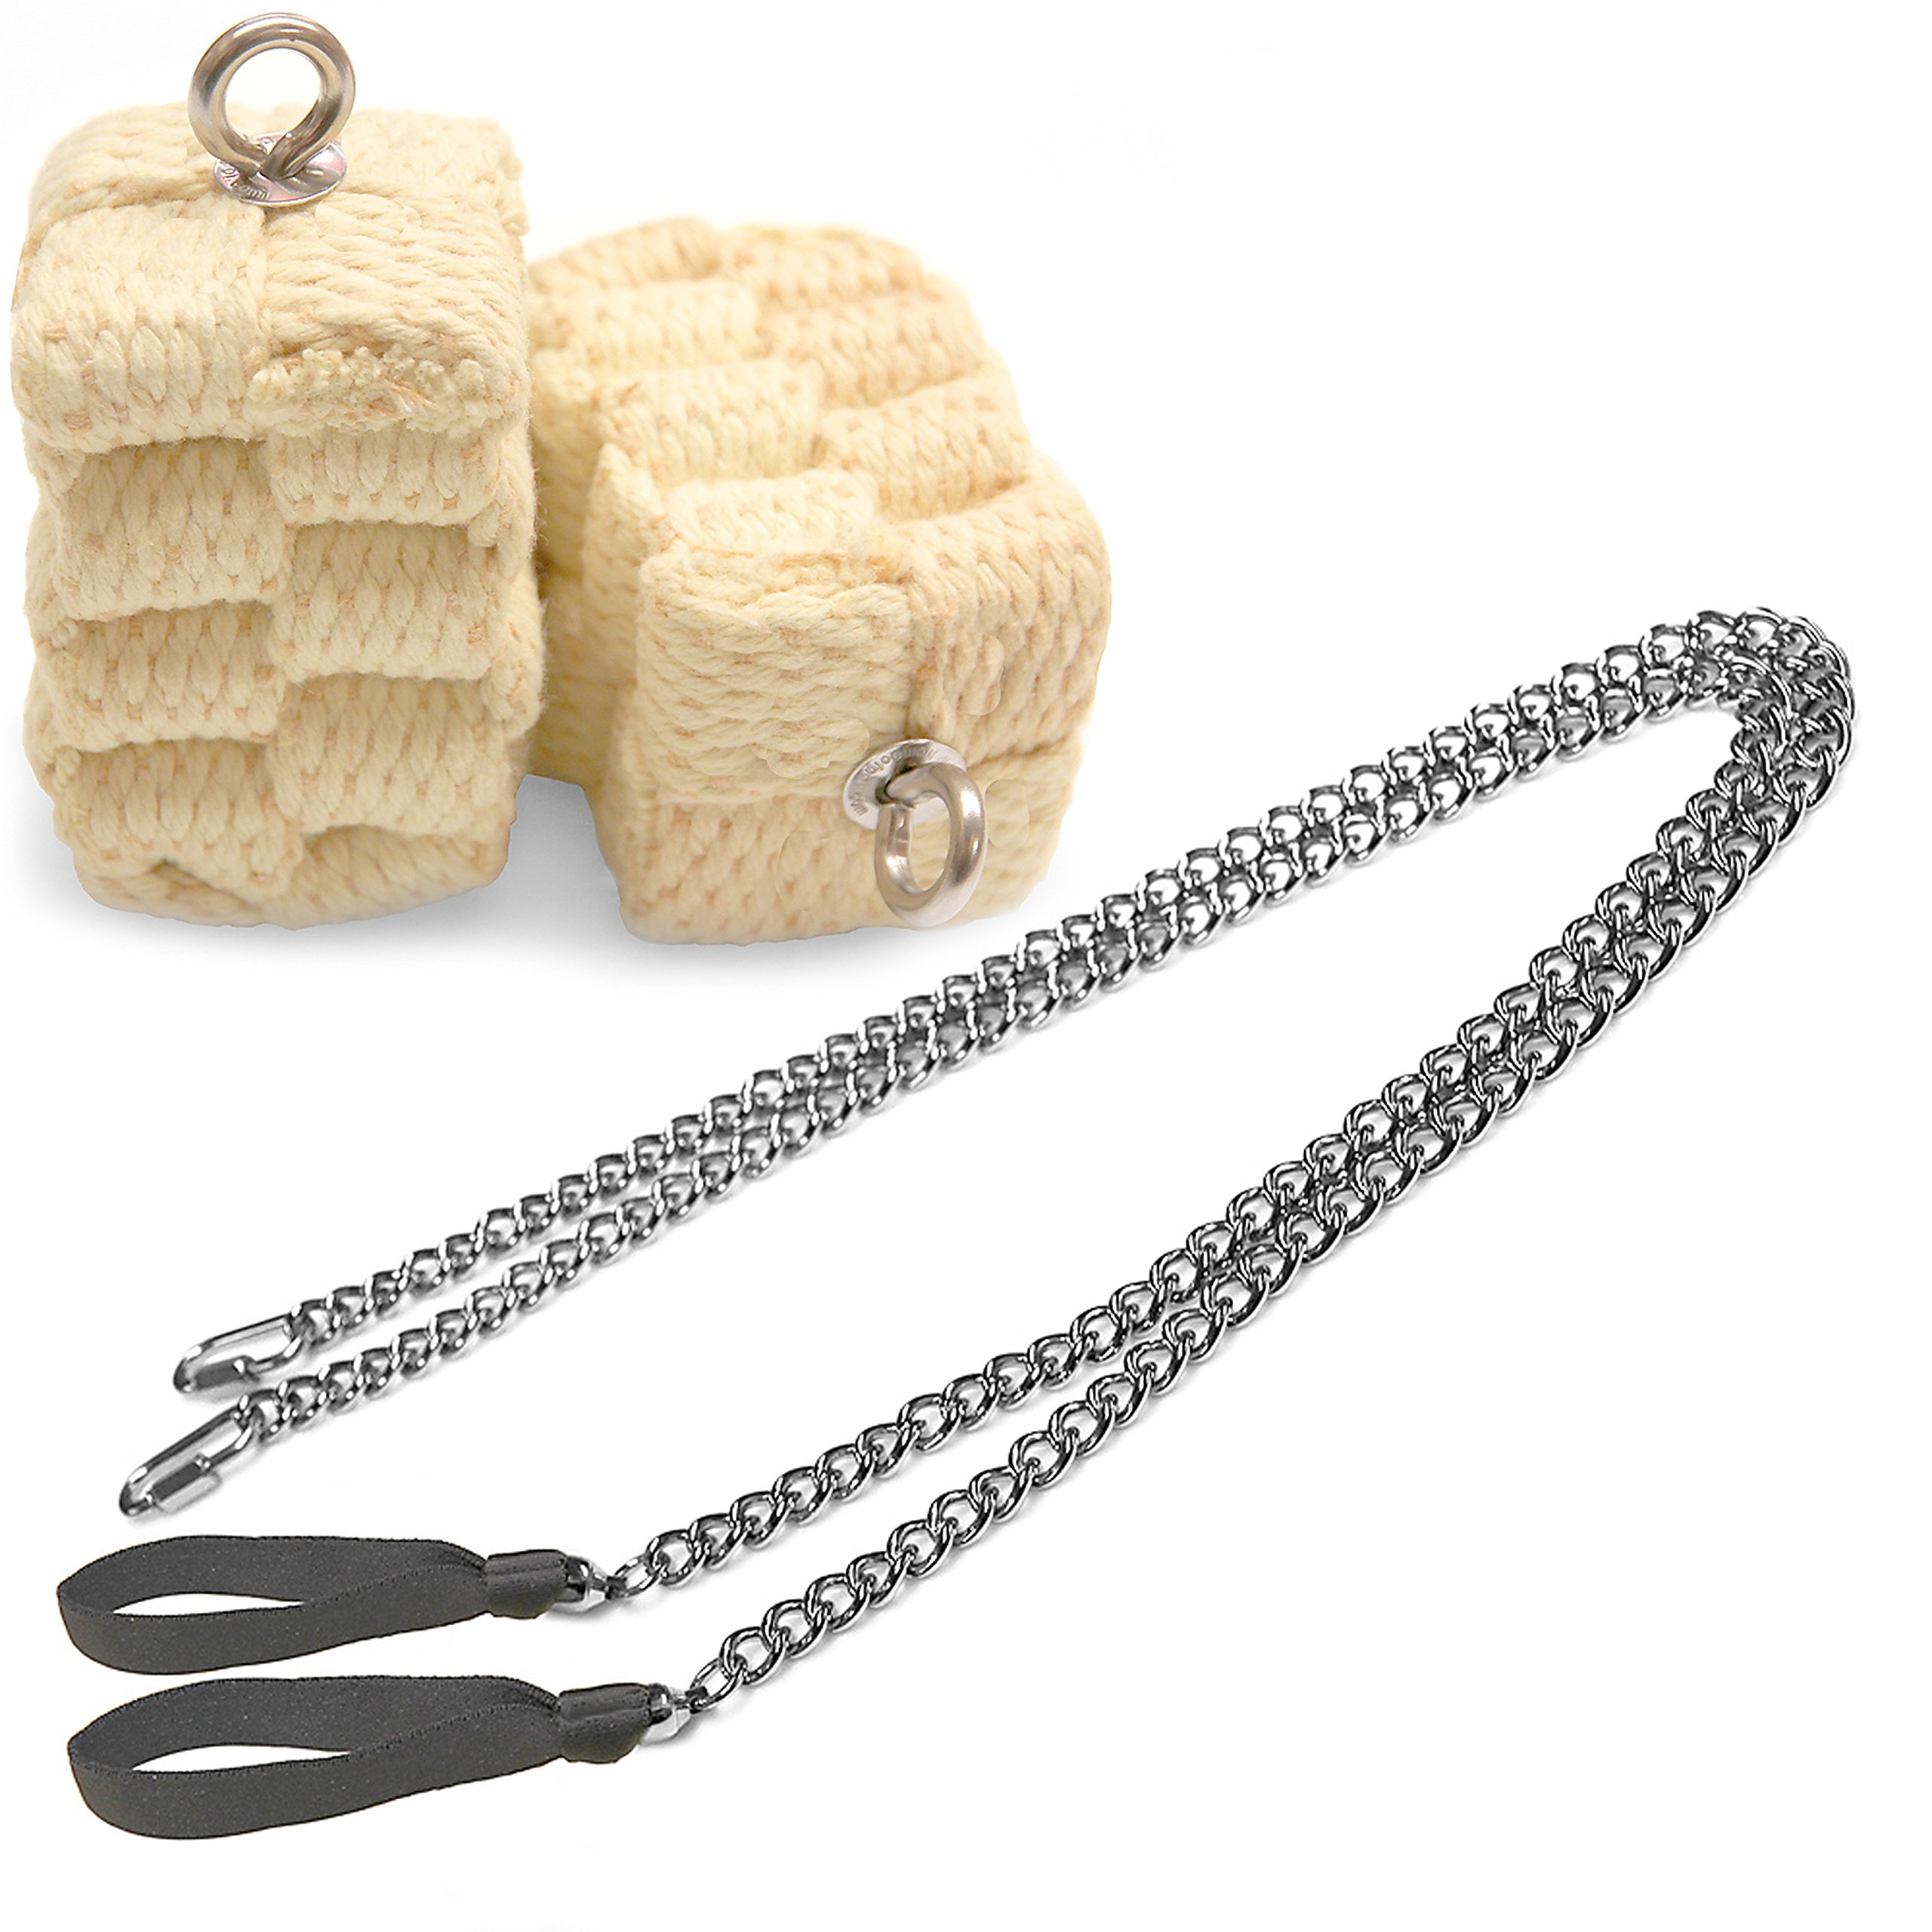 Pair of Pro Chain Block Fire Poi Large - Silver Chain, M - 26 inch (66cm)